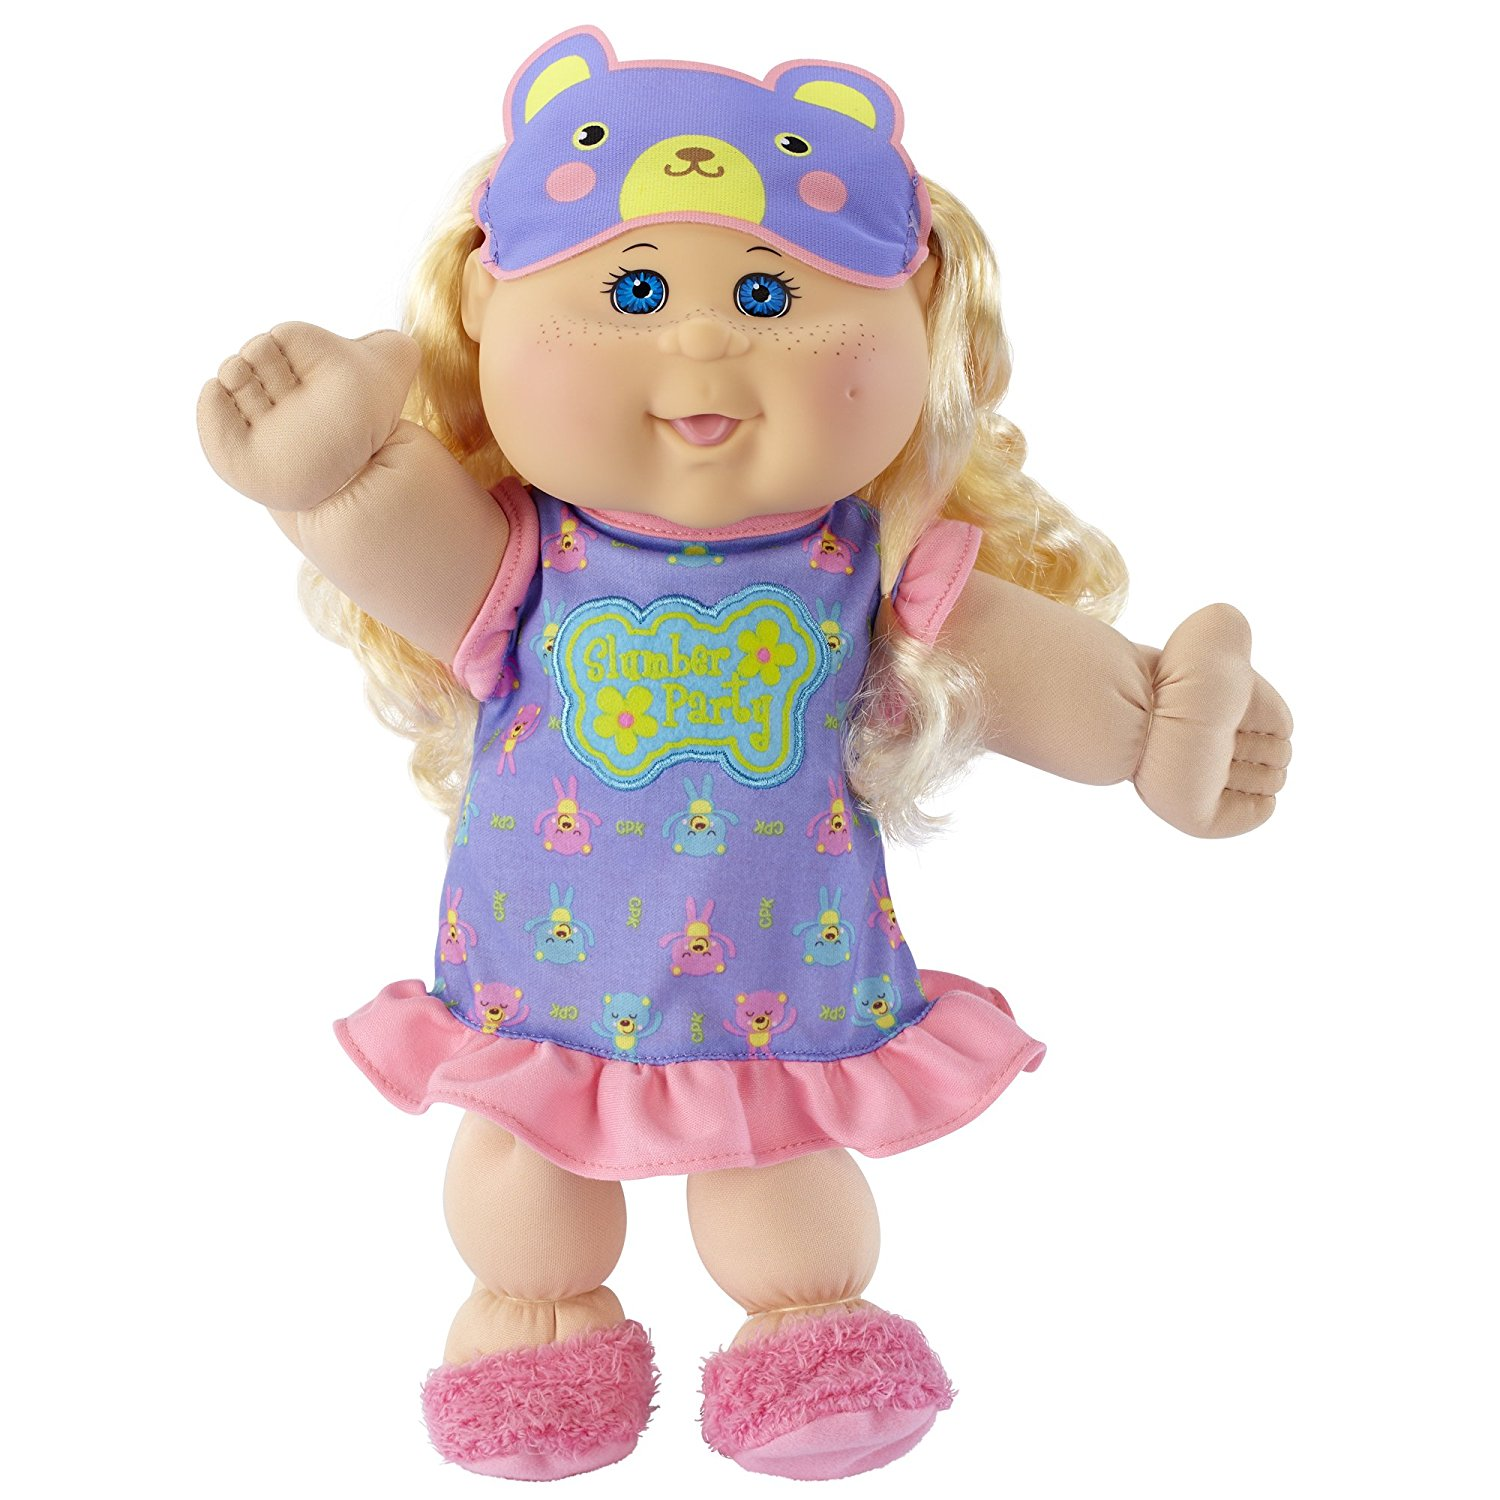 "Cabbage Patch Kids Glow Party: Blond Hair, Caucasian Girl 14"" Doll"